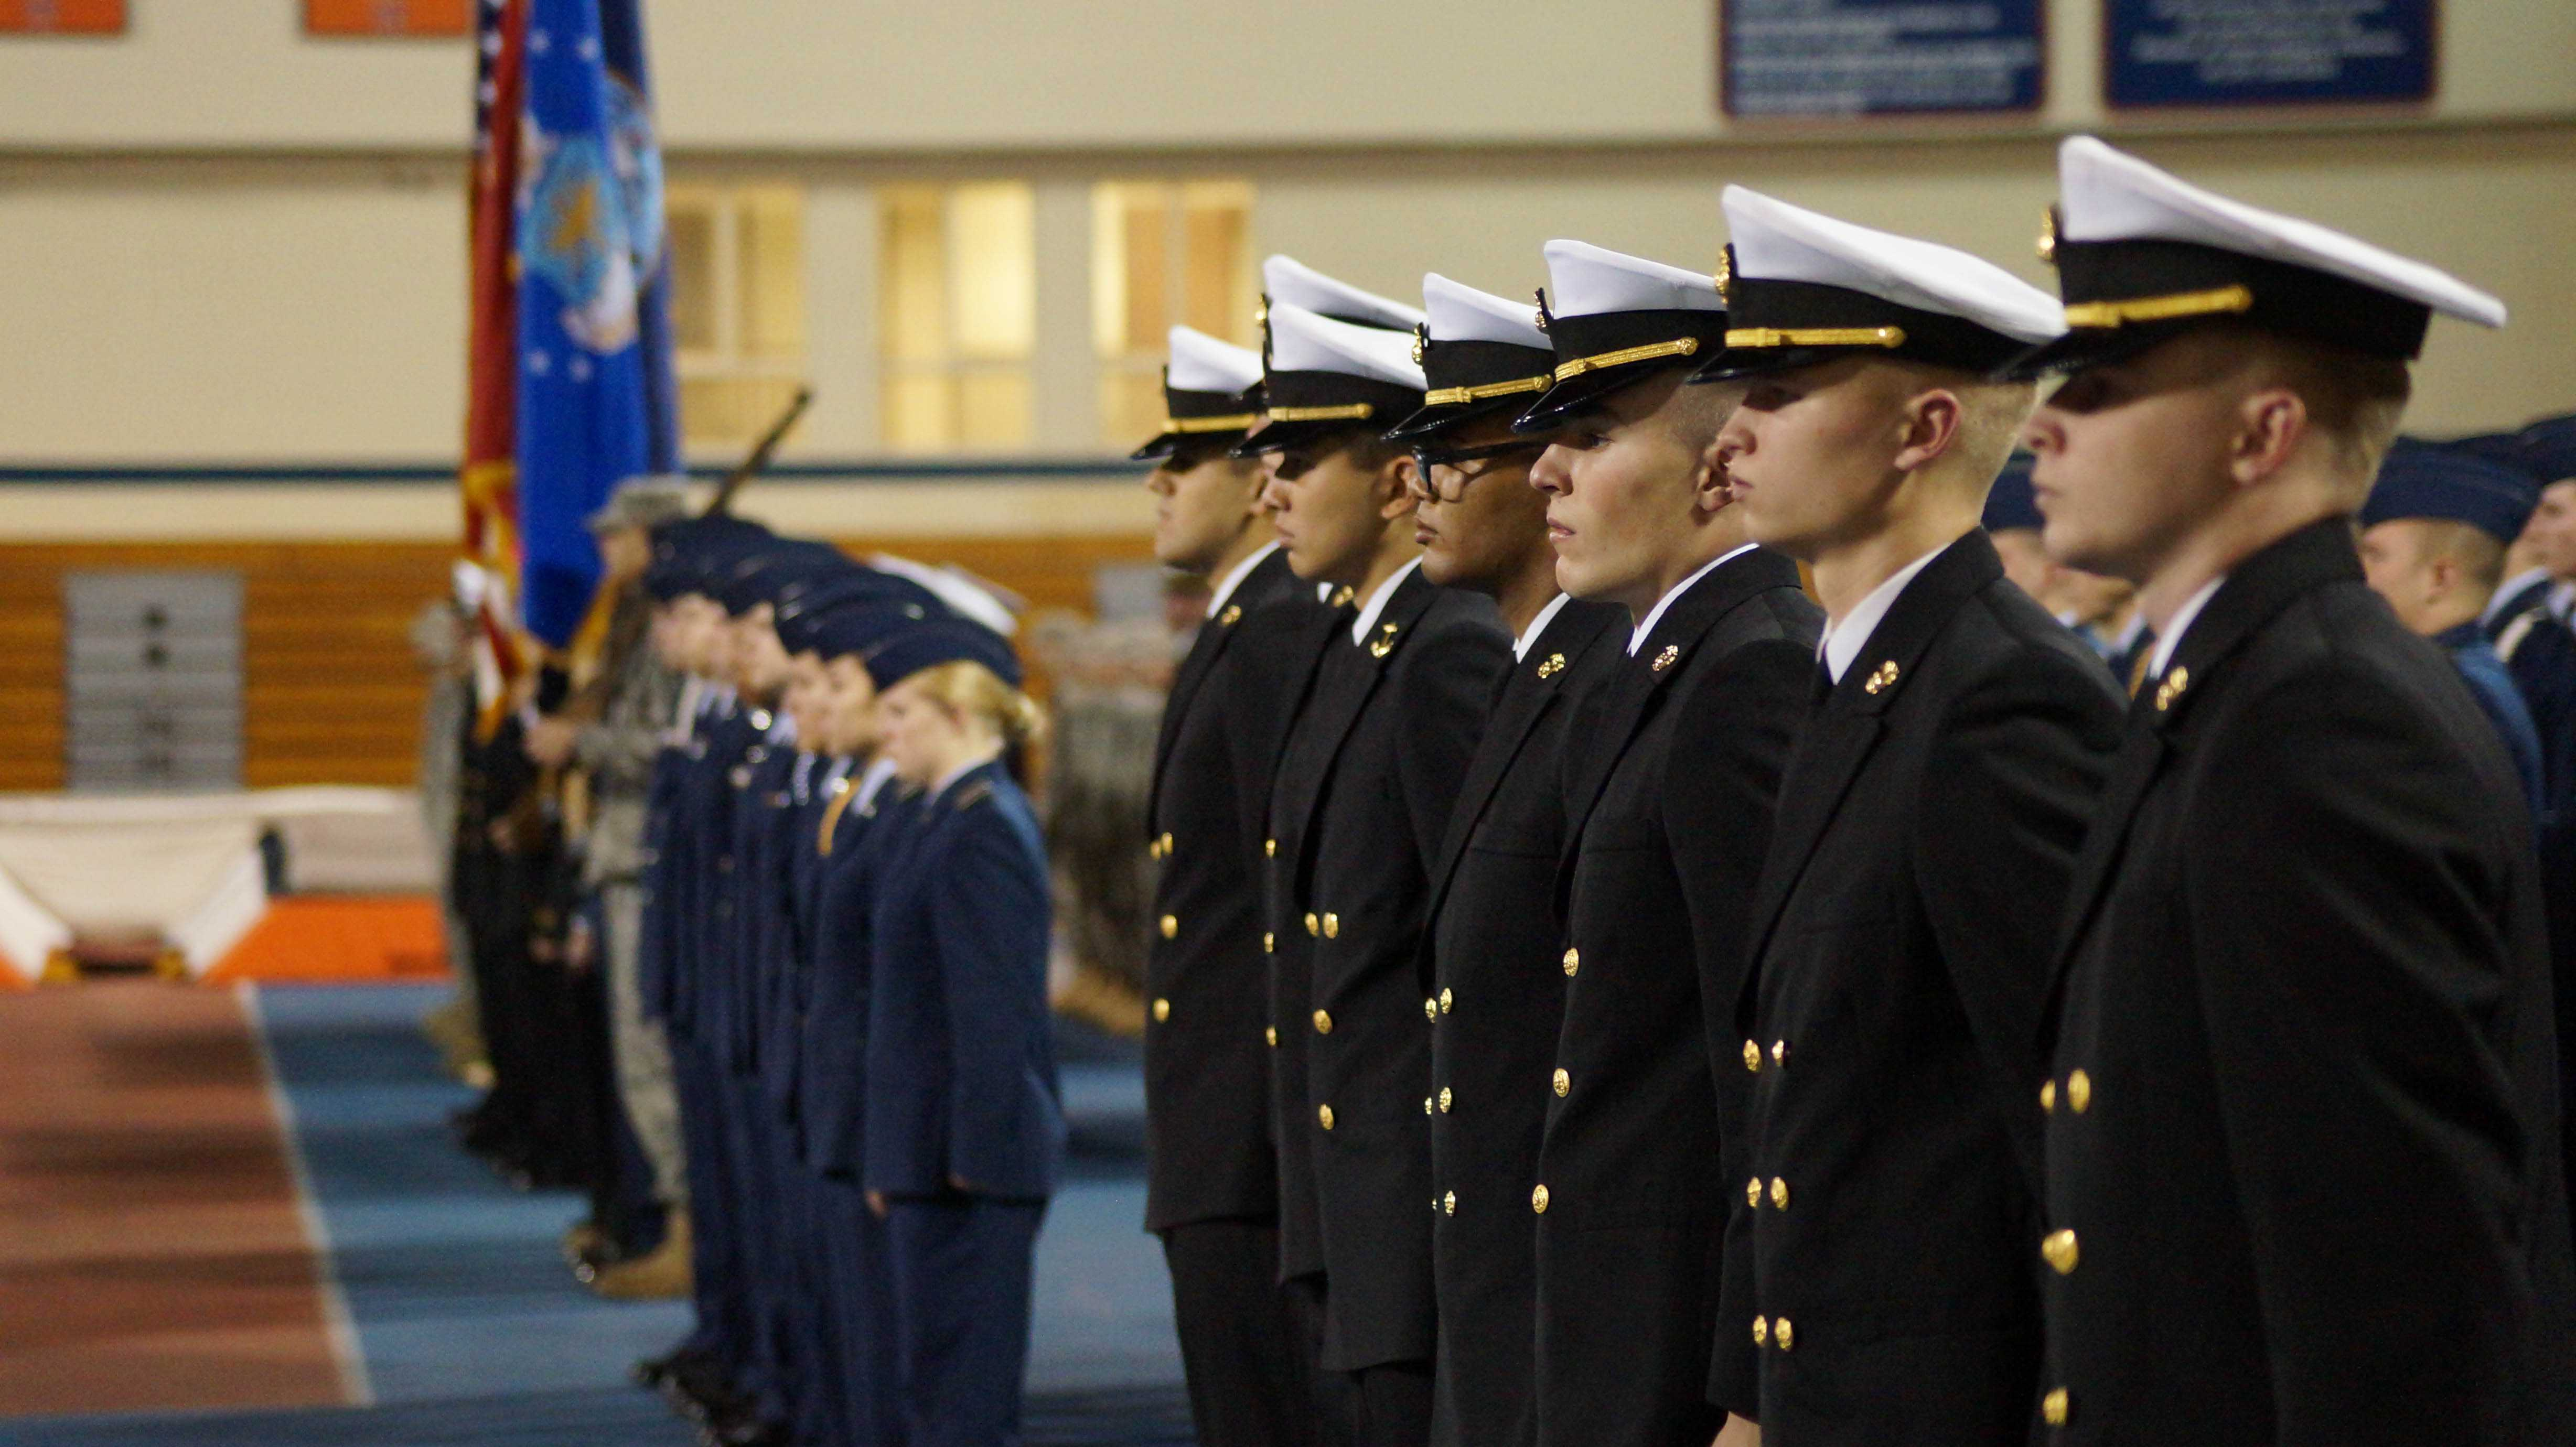 Members of ROTC attend The Tri-Service ROTC Veterans Day Ceremony at the  Armory on November 11, 2014. Columnist Hayley Nagelberg highlights a fundraising effort by the Illini Veterans RSO to raise money for a burned-down veterans house in Danville.